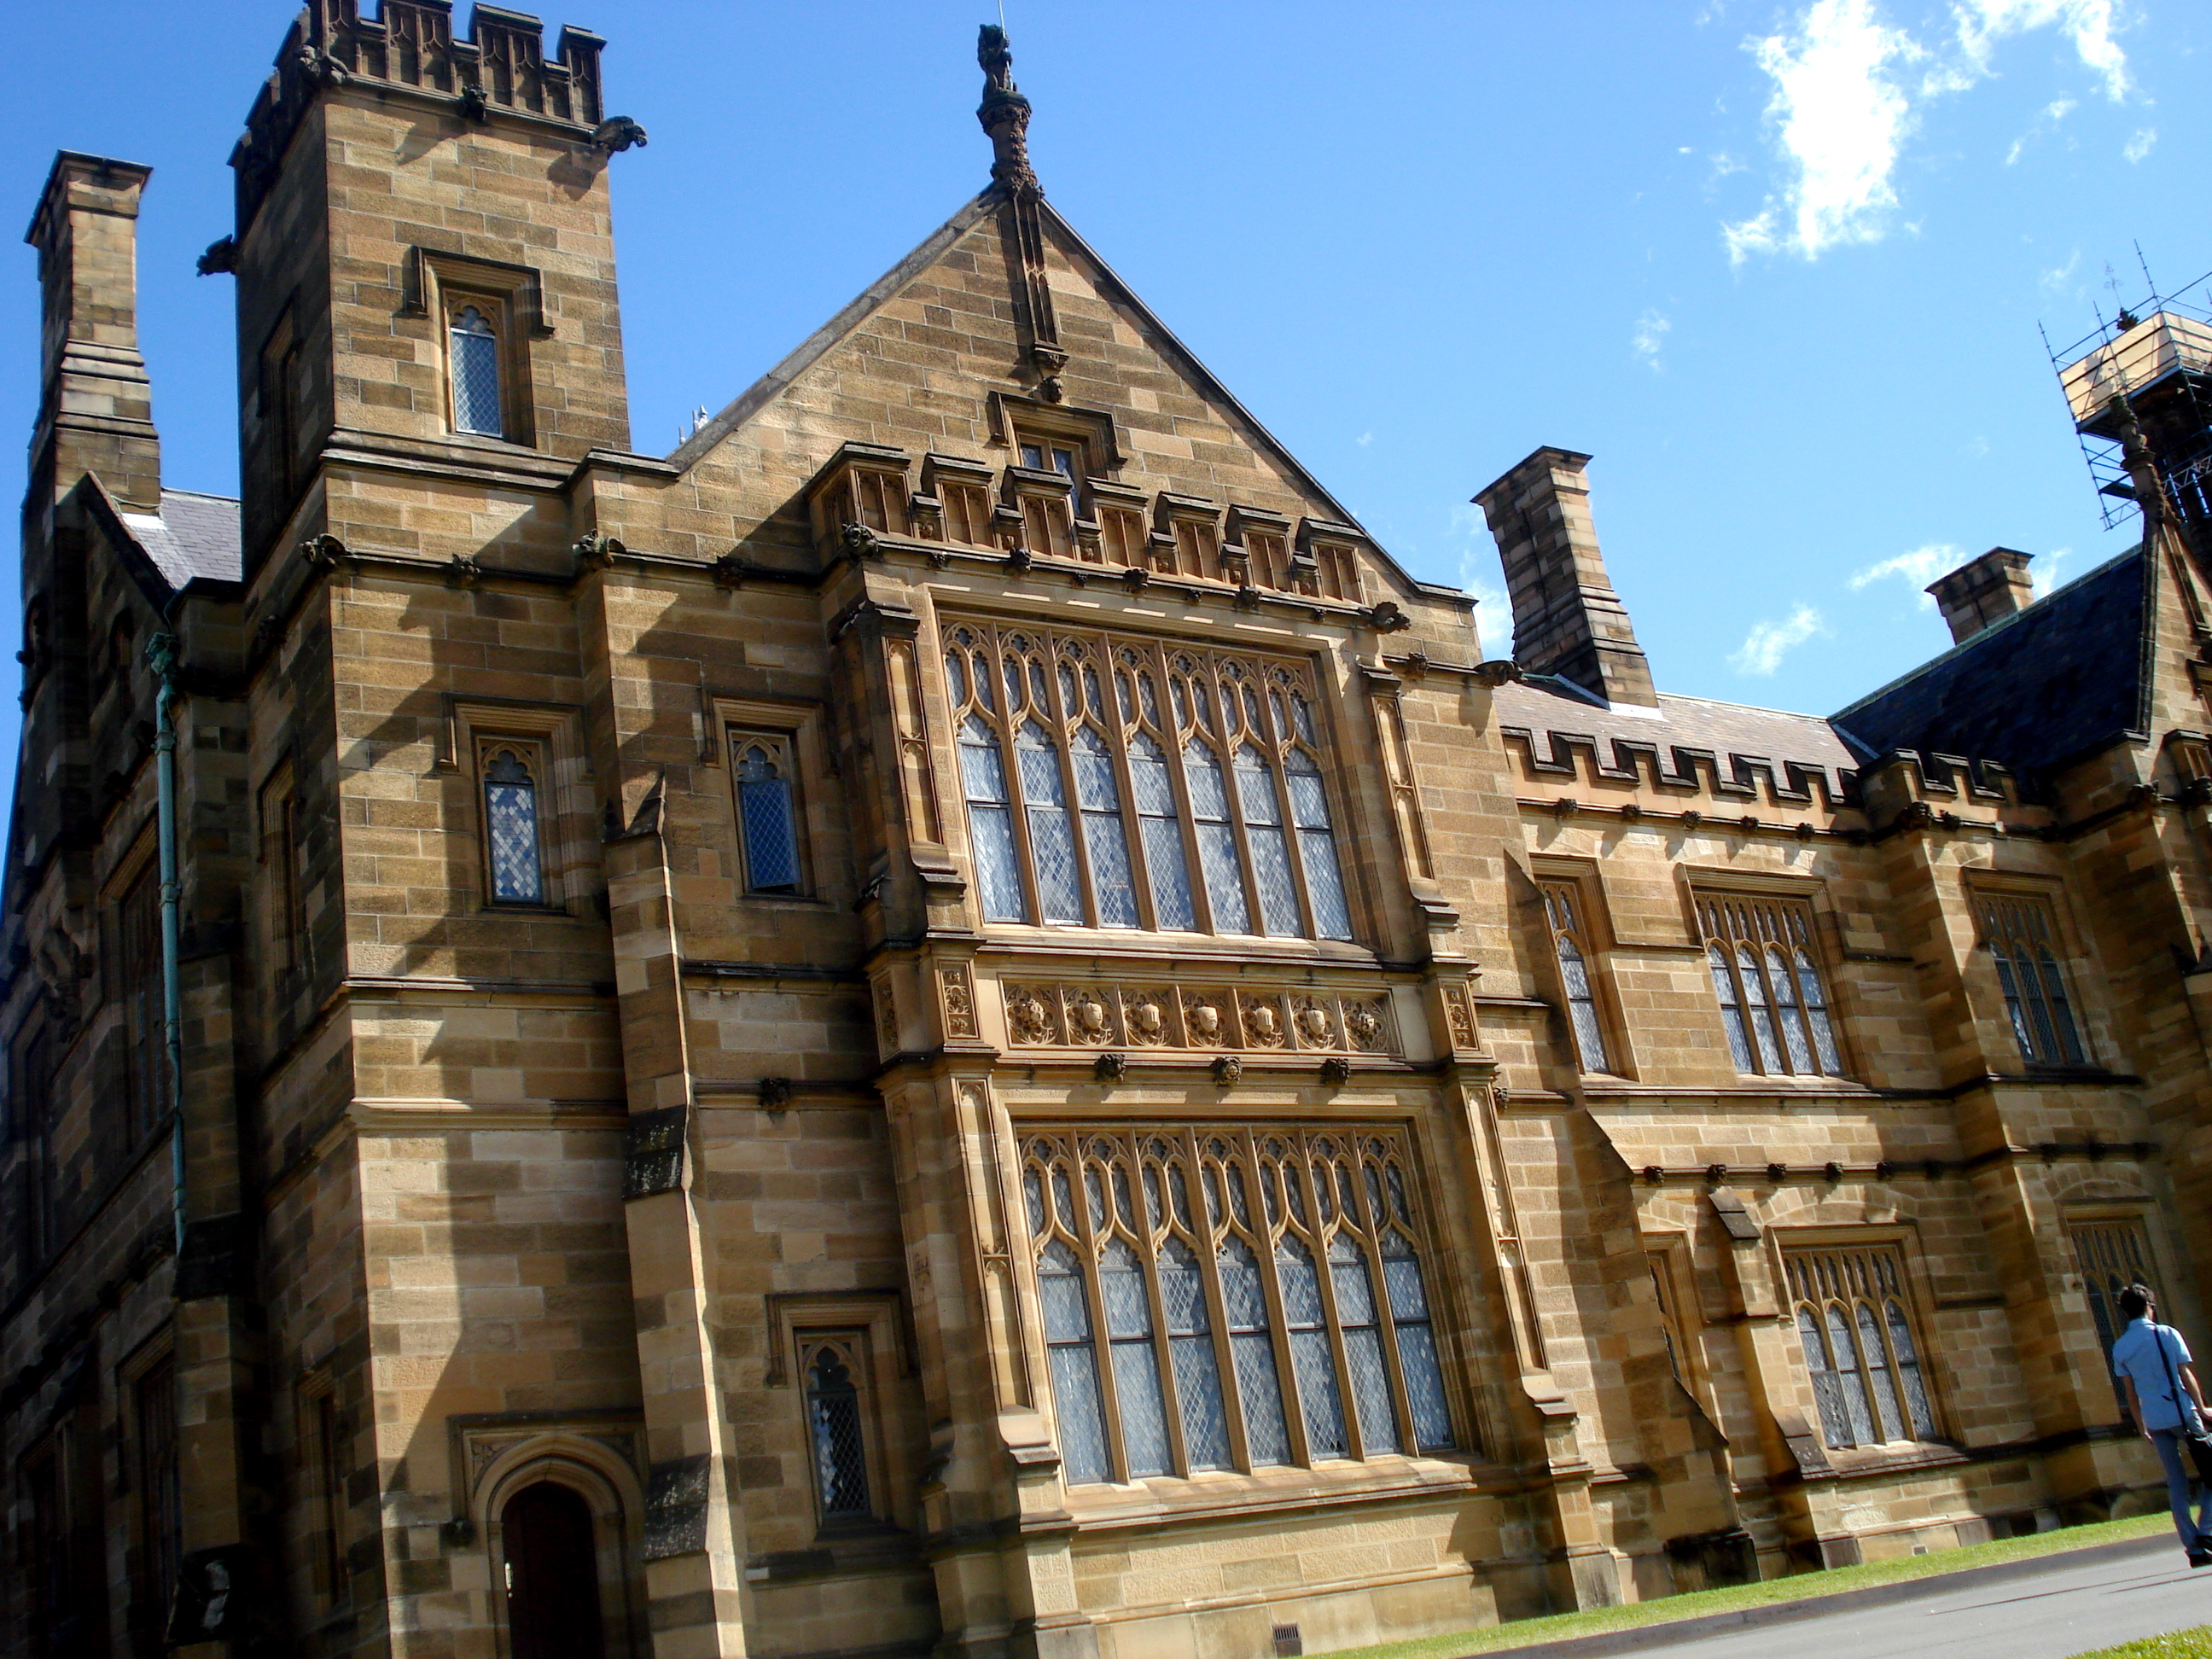 Sydney uni exchange: buildings on campus